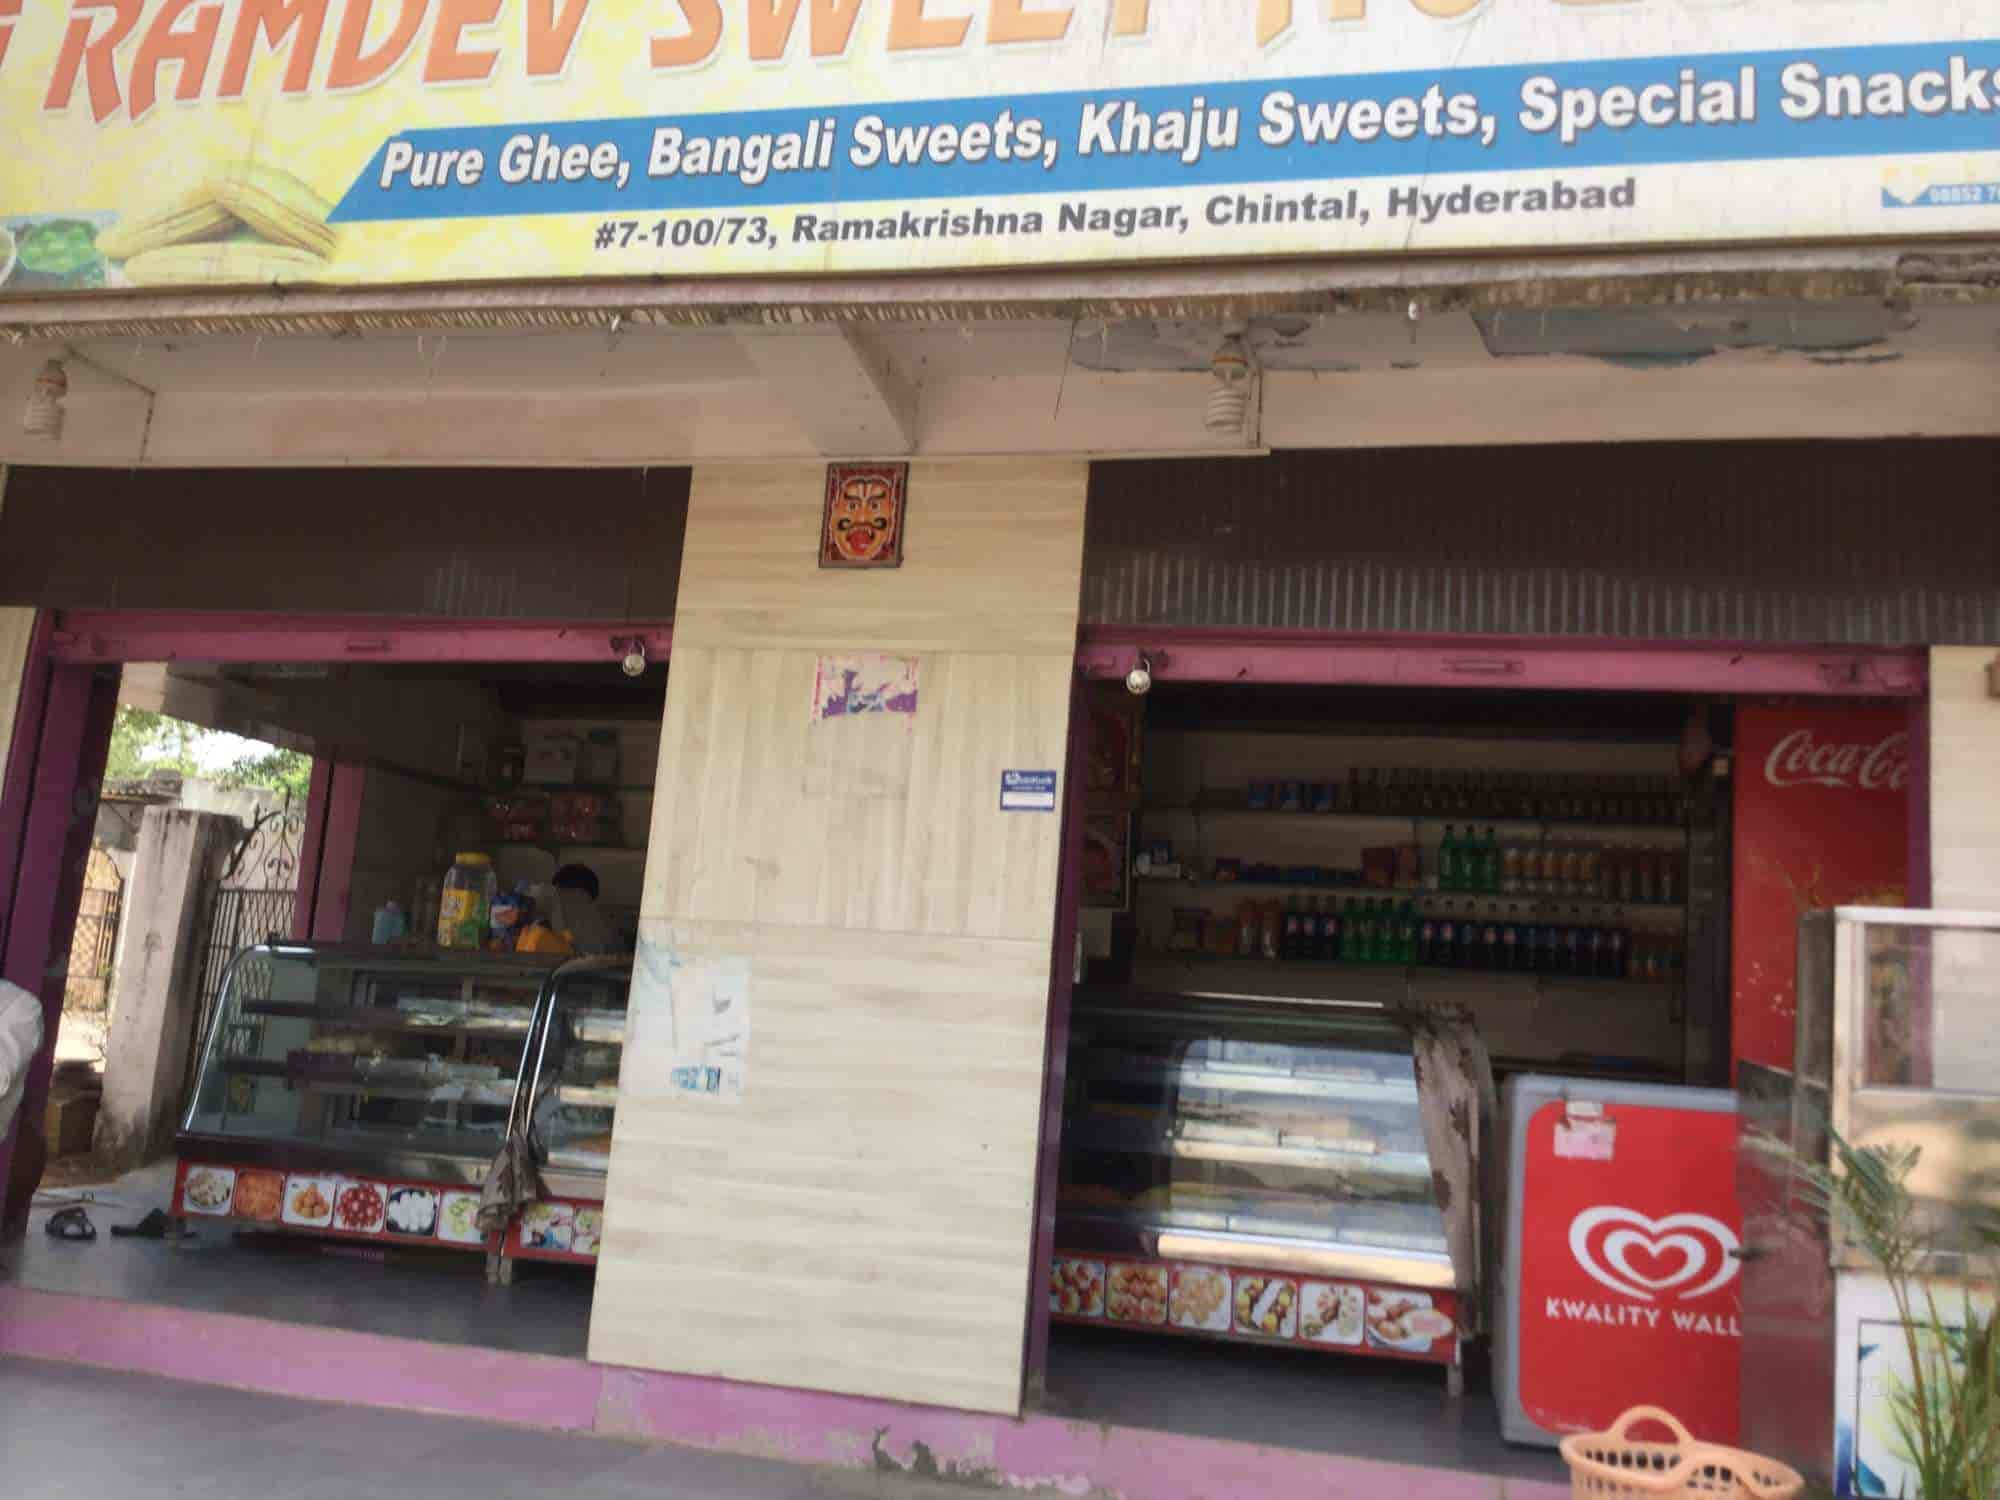 Baba Ramdev Sweet House Photos, Chintal, Hyderabad- Pictures